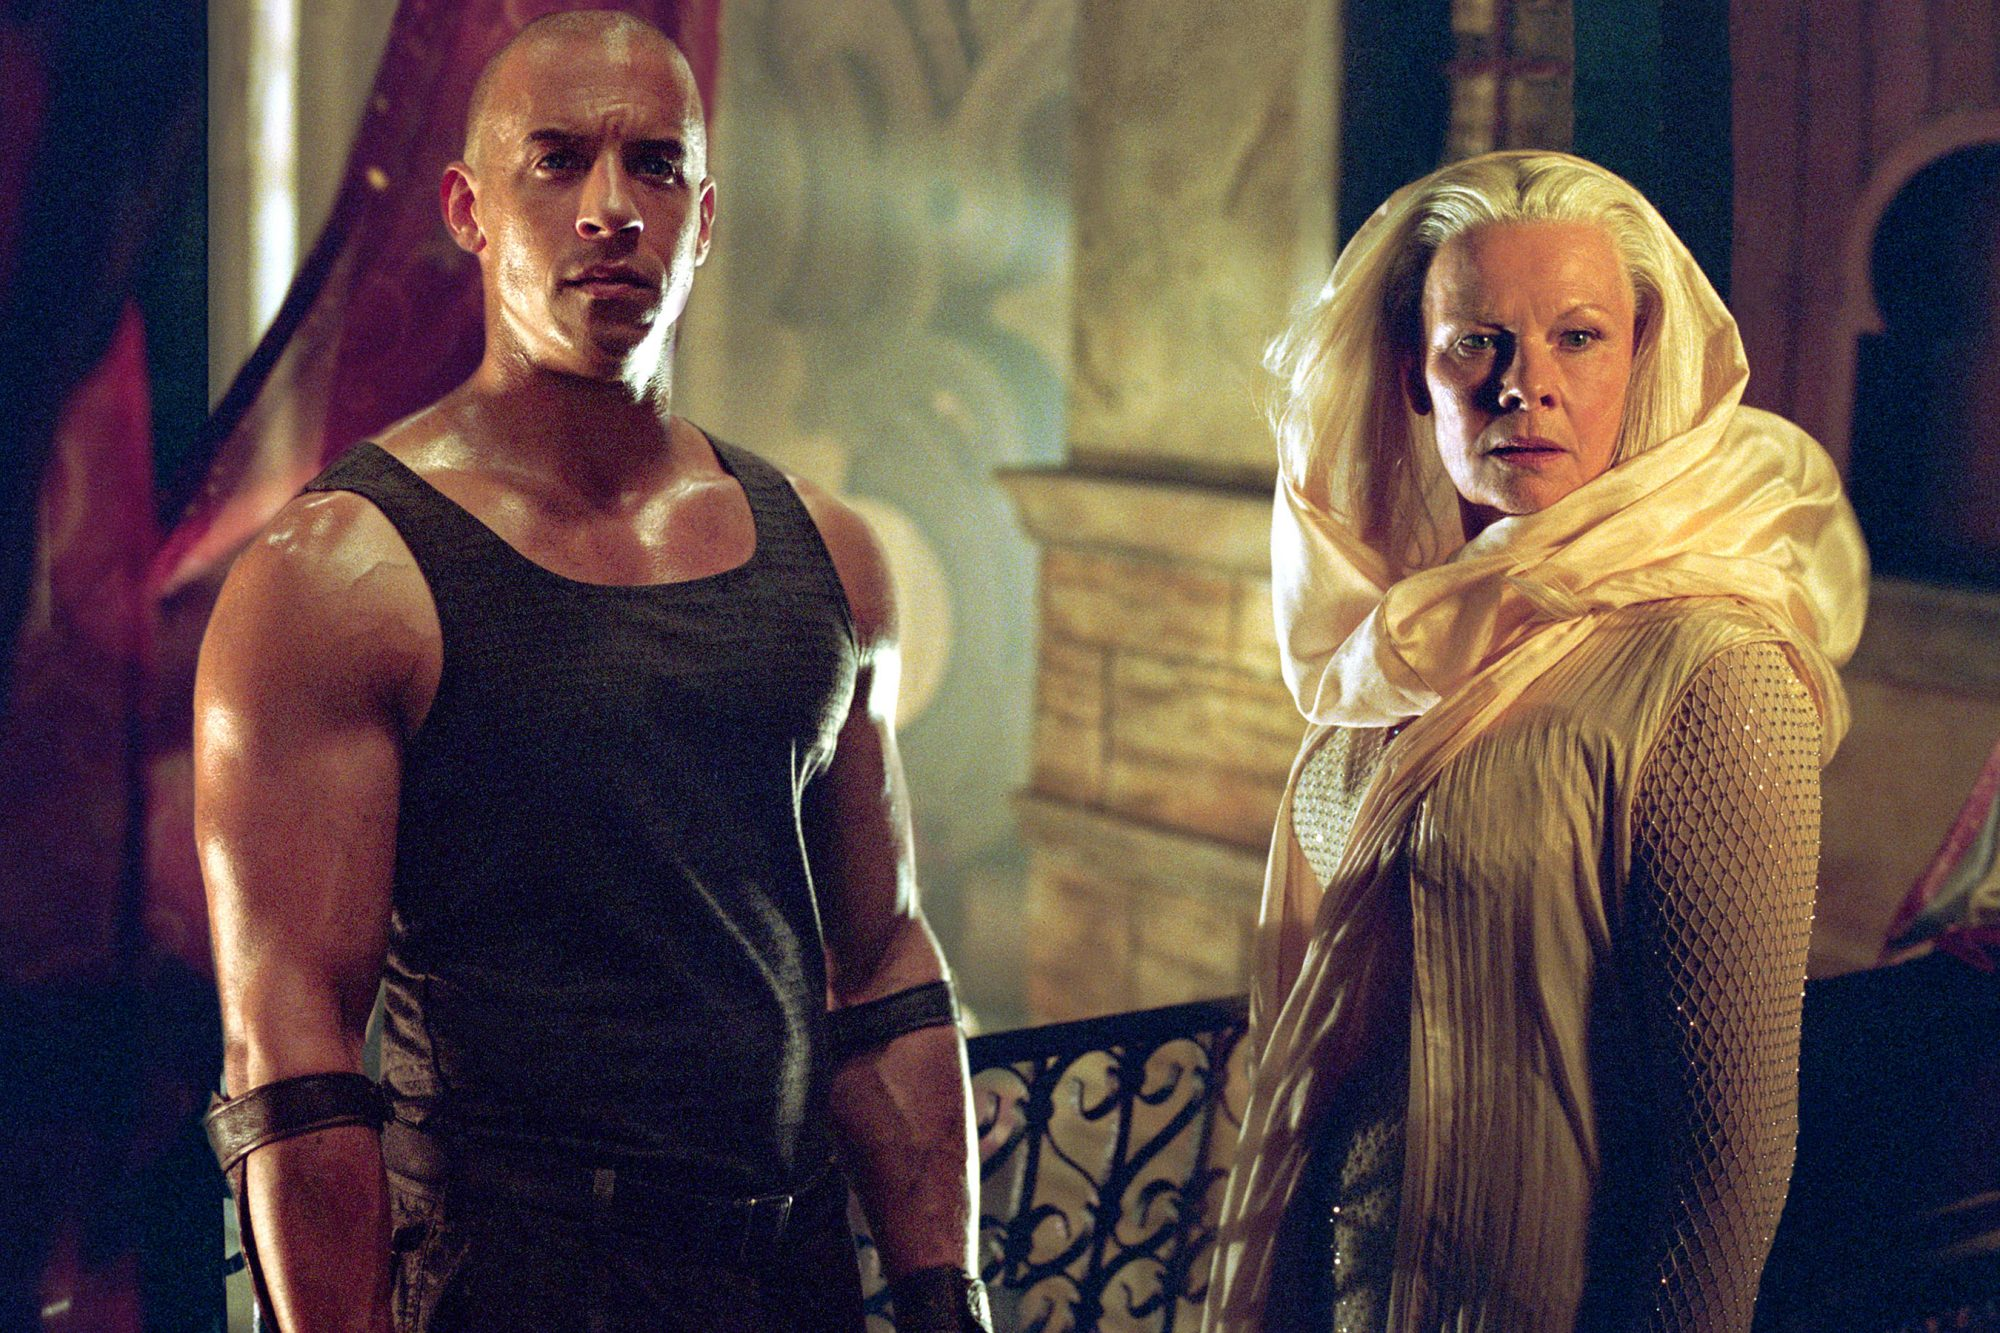 THE CHRONICLES OF RIDDICK, Vin Diesel, Judi Dench, 2004, (c) Universal/courtesy Everett Collection